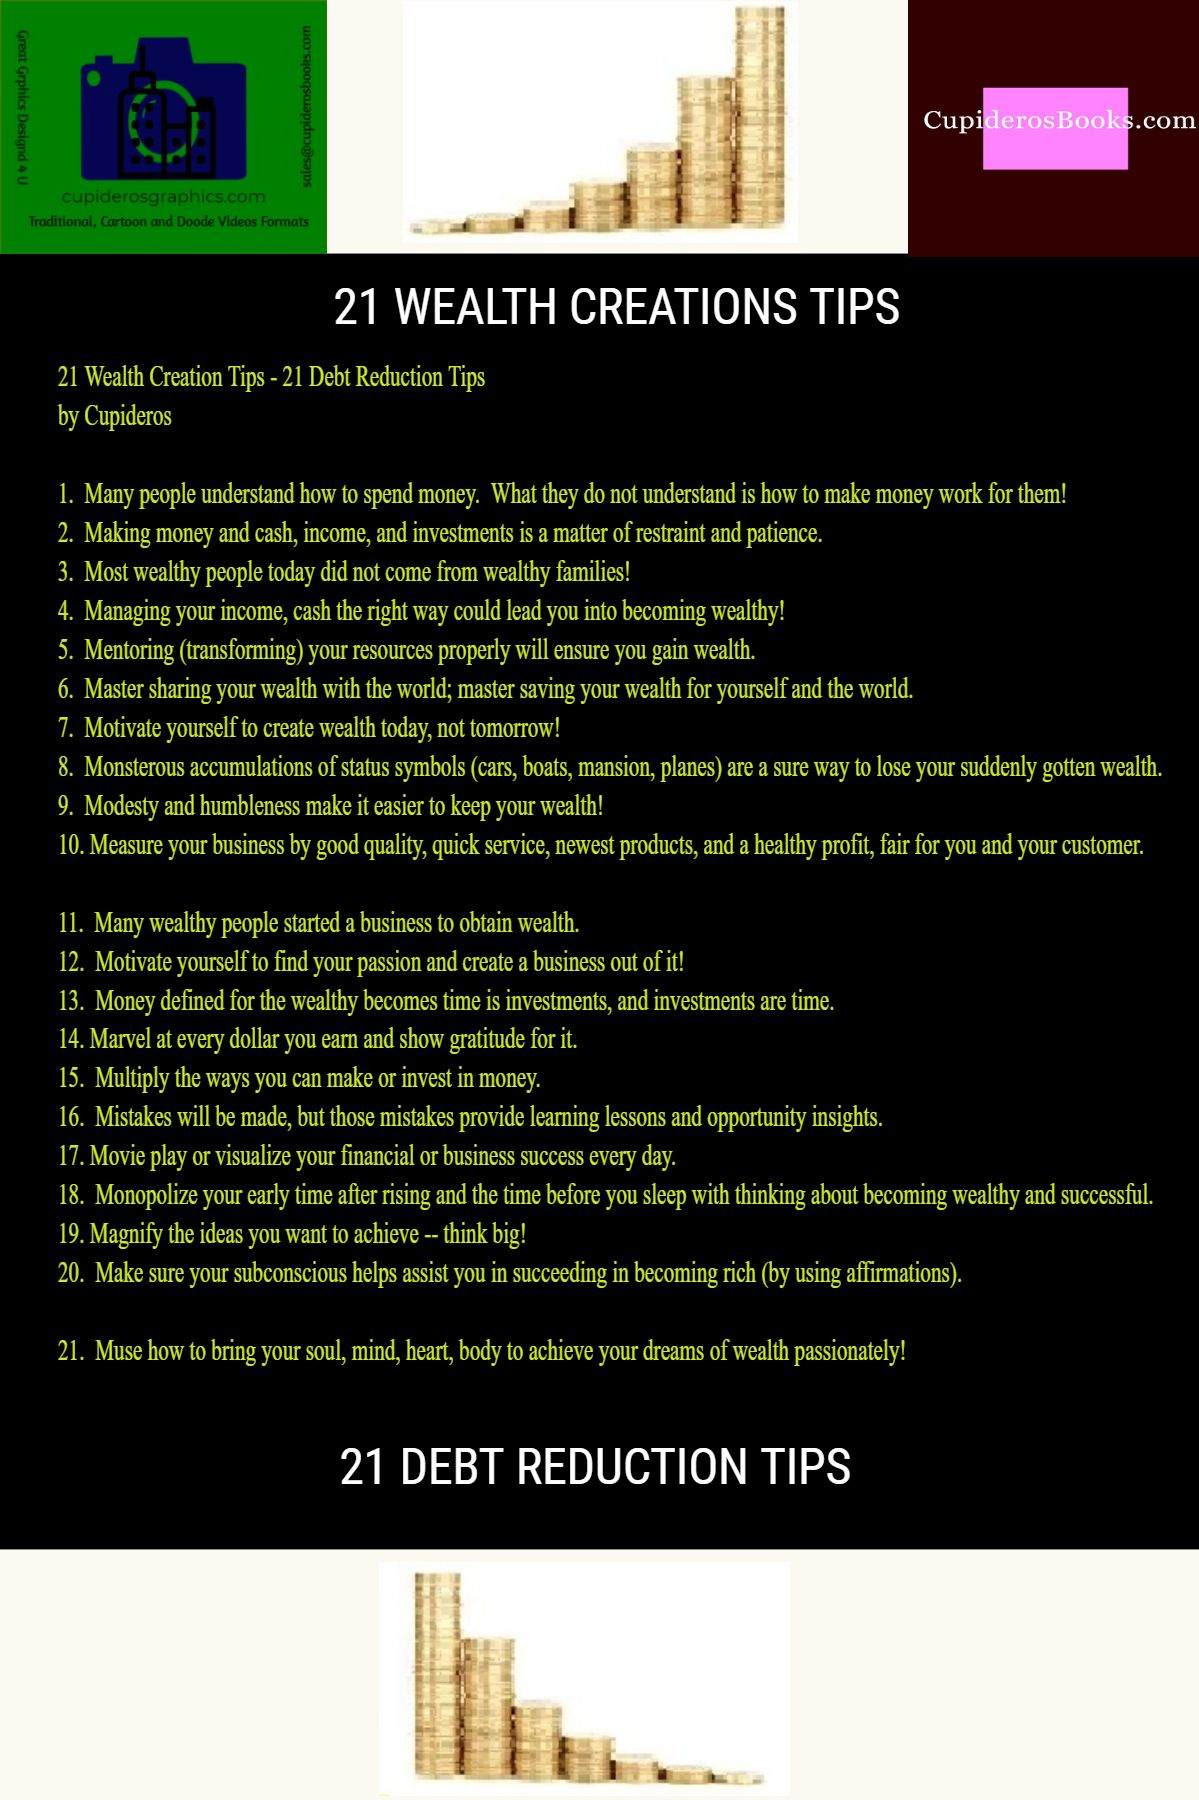 21 Wealth Creation and Debt Reduction Tips